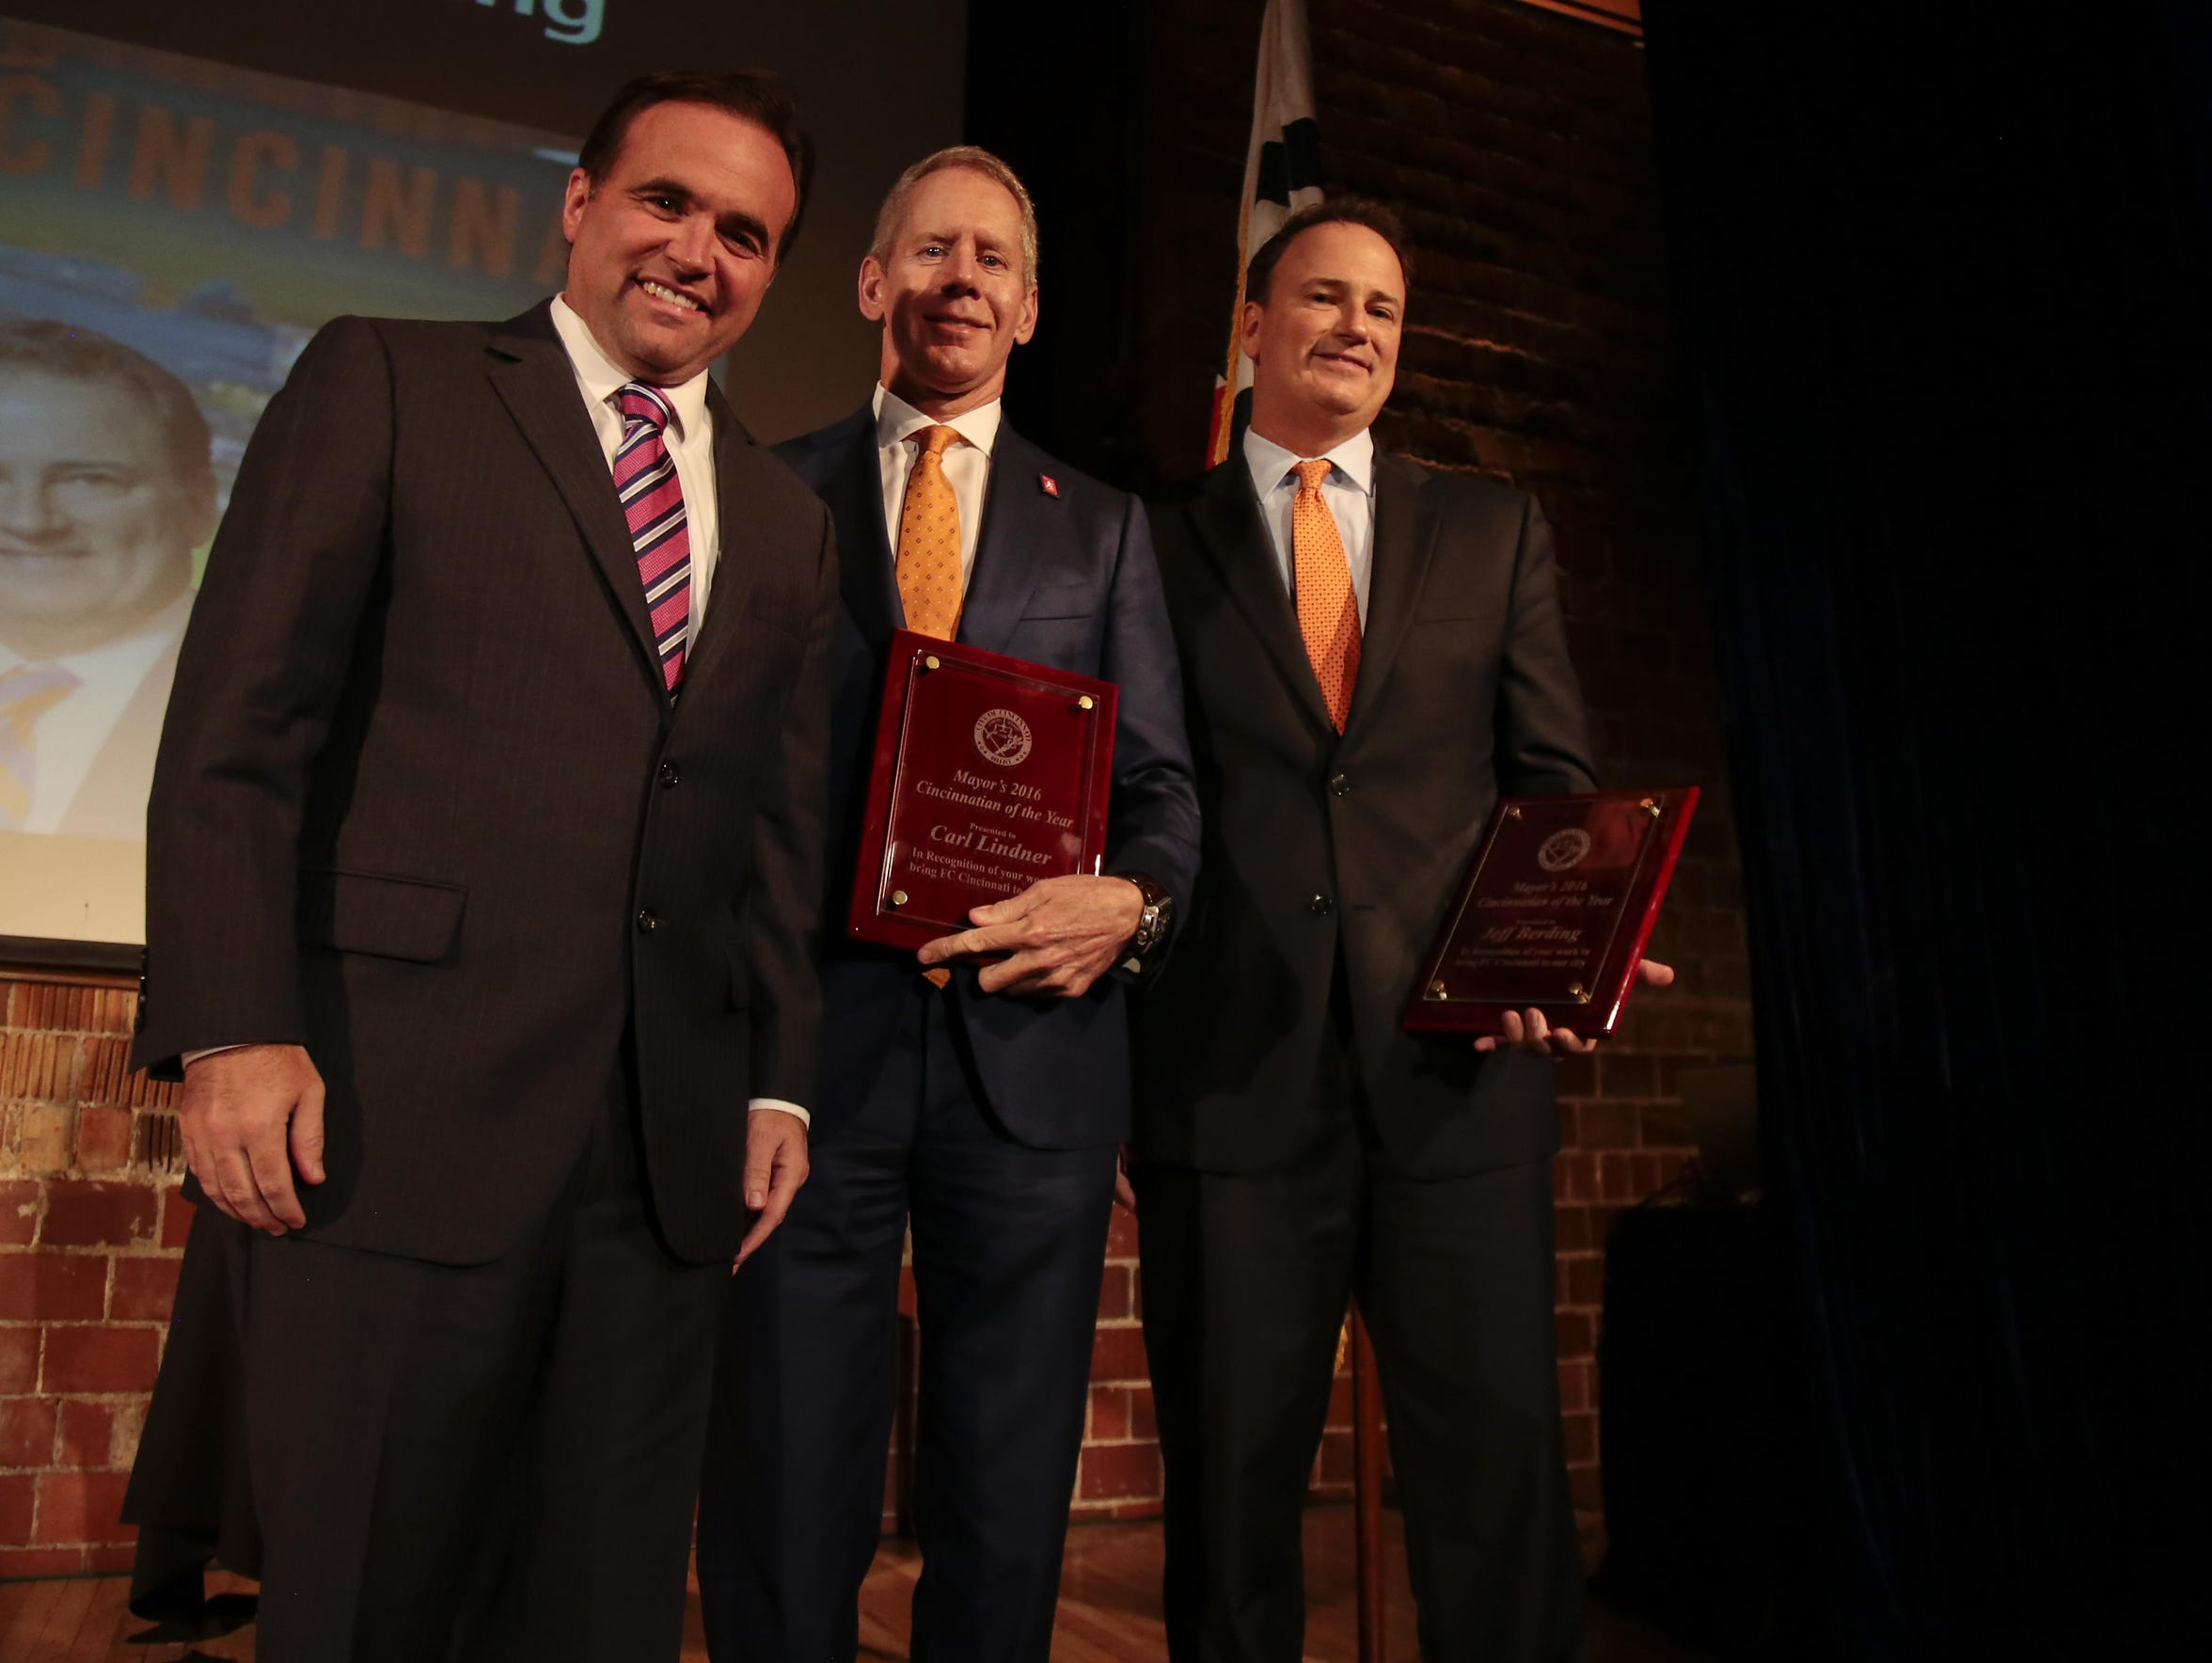 FC Cincinnati CEO Carl H. Lindner III, center, and President & General Manager Jeff Berding, right, have declined to talk about financial details of landing an MLS soccer team. They are shown here with Cincinnati Mayor John Cranley in 2016.